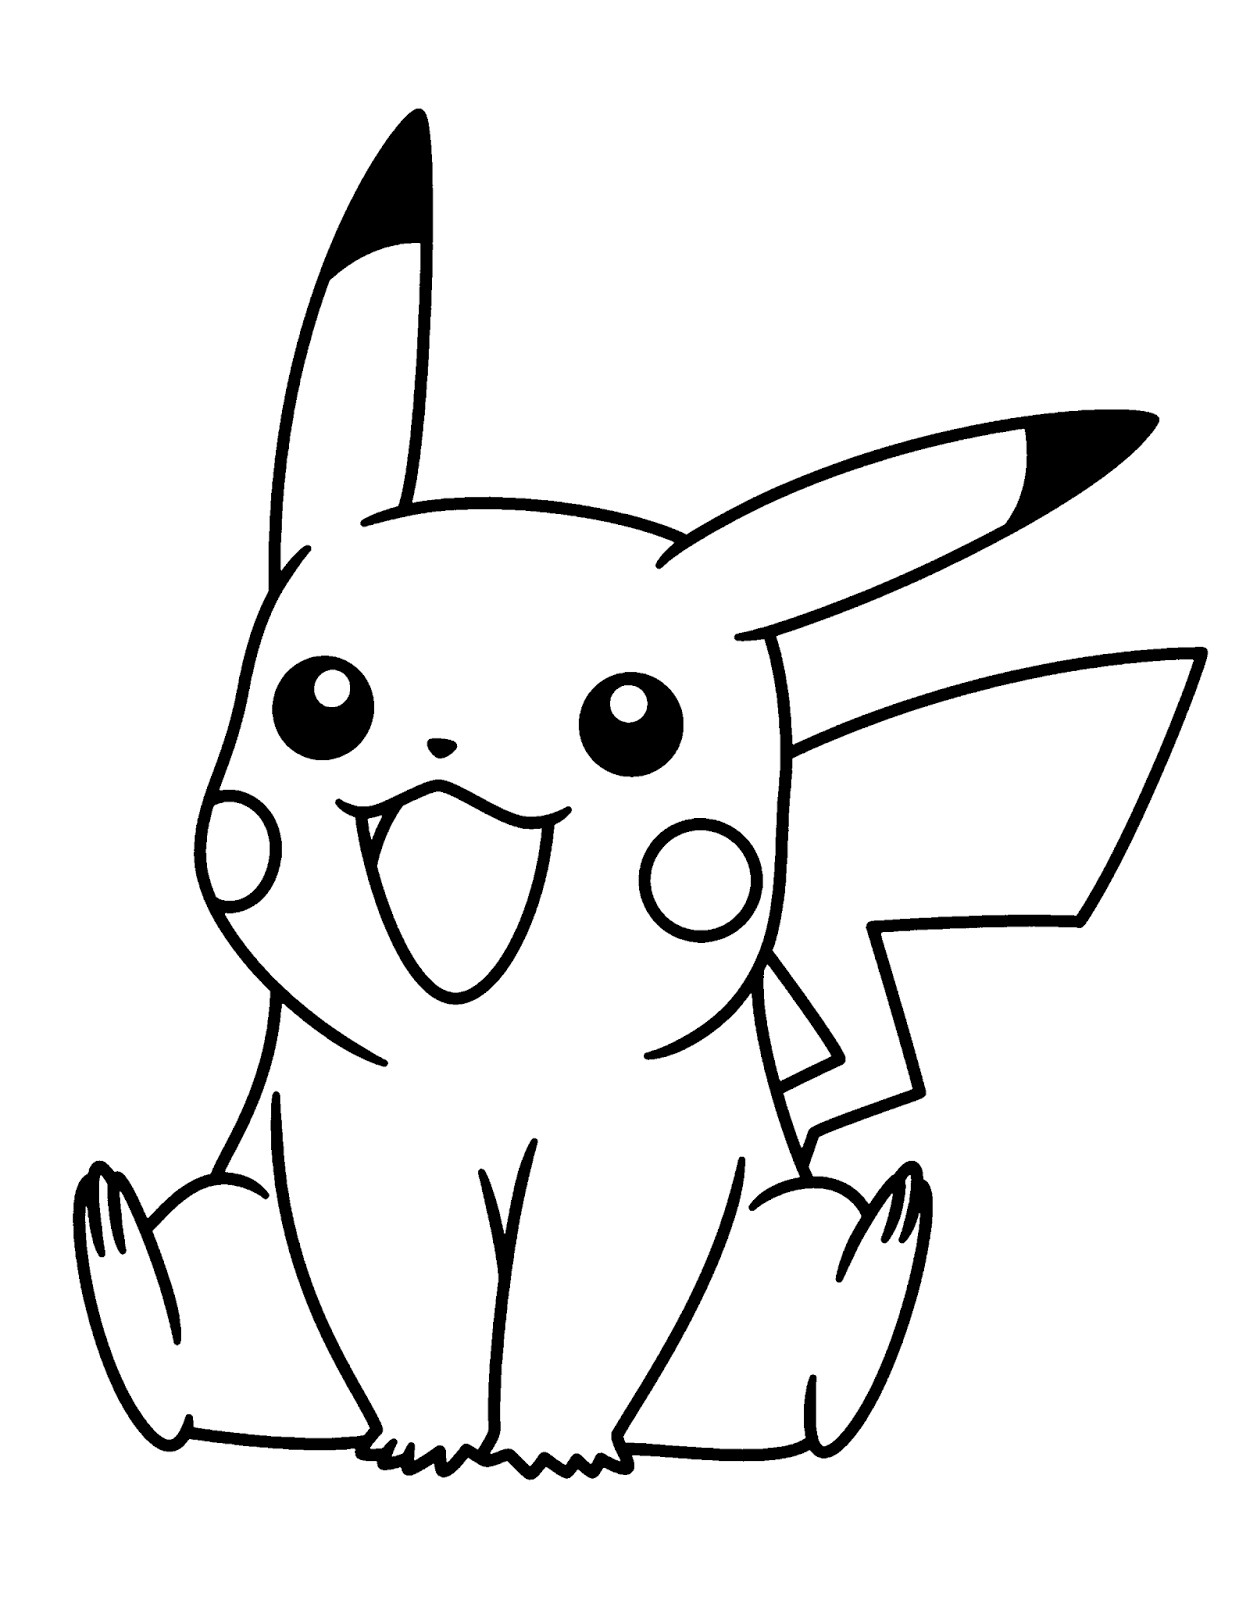 Free Coloring Pages Pokemon  Coloring Pages Pokemon Coloring Pages Free and Printable